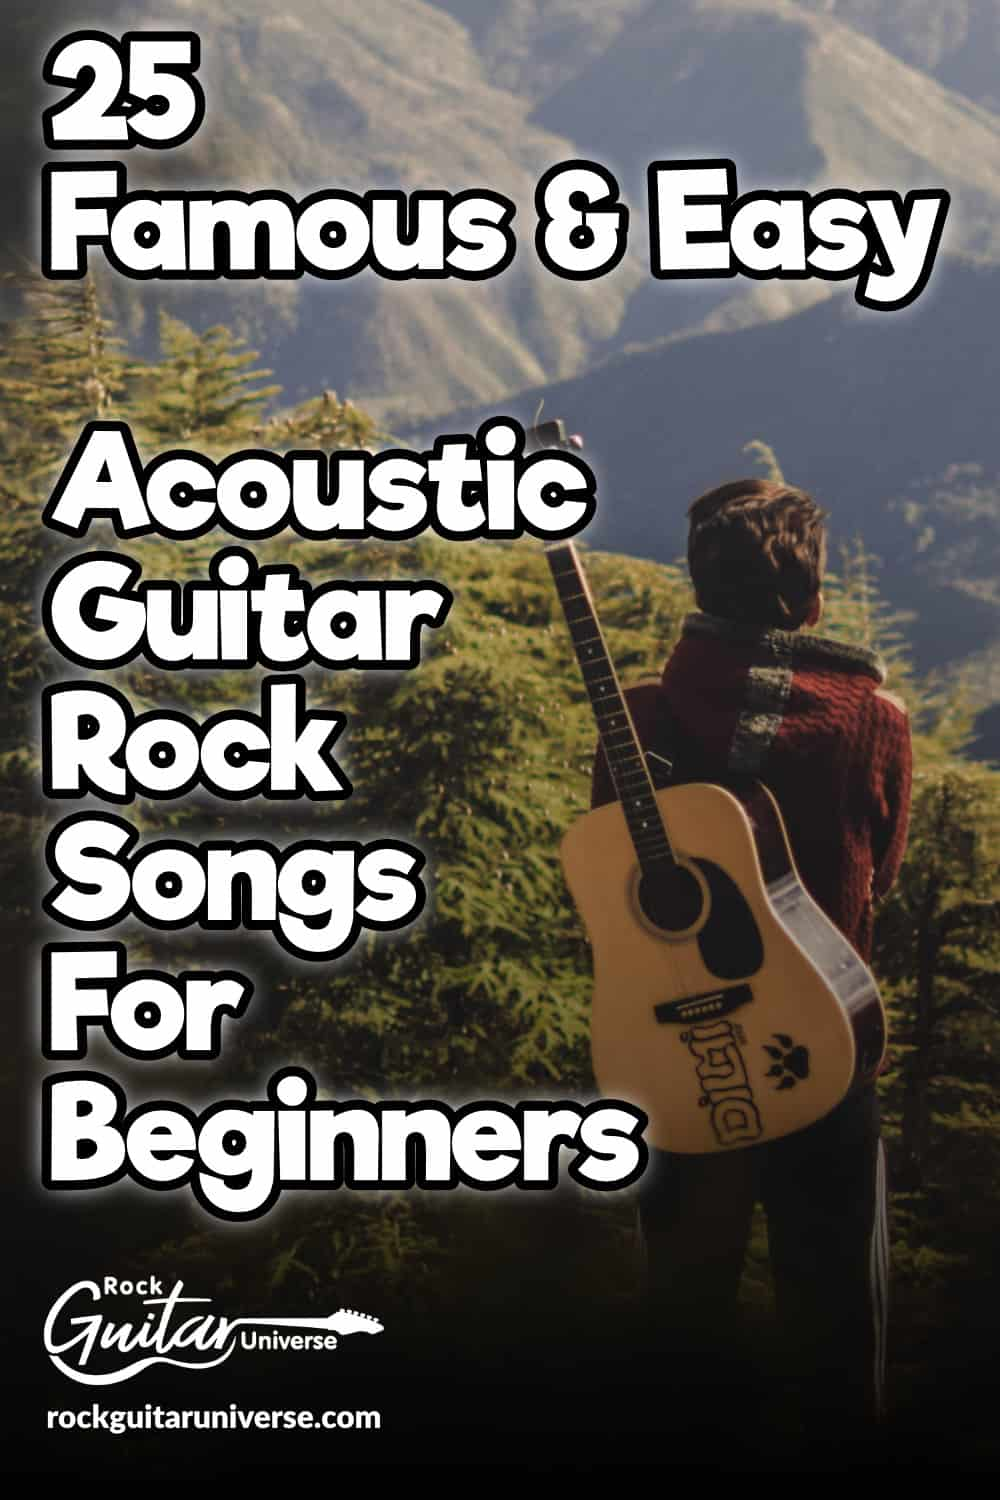 25 Famous & Easy Acoustic Guitar Rock Songs For Beginners